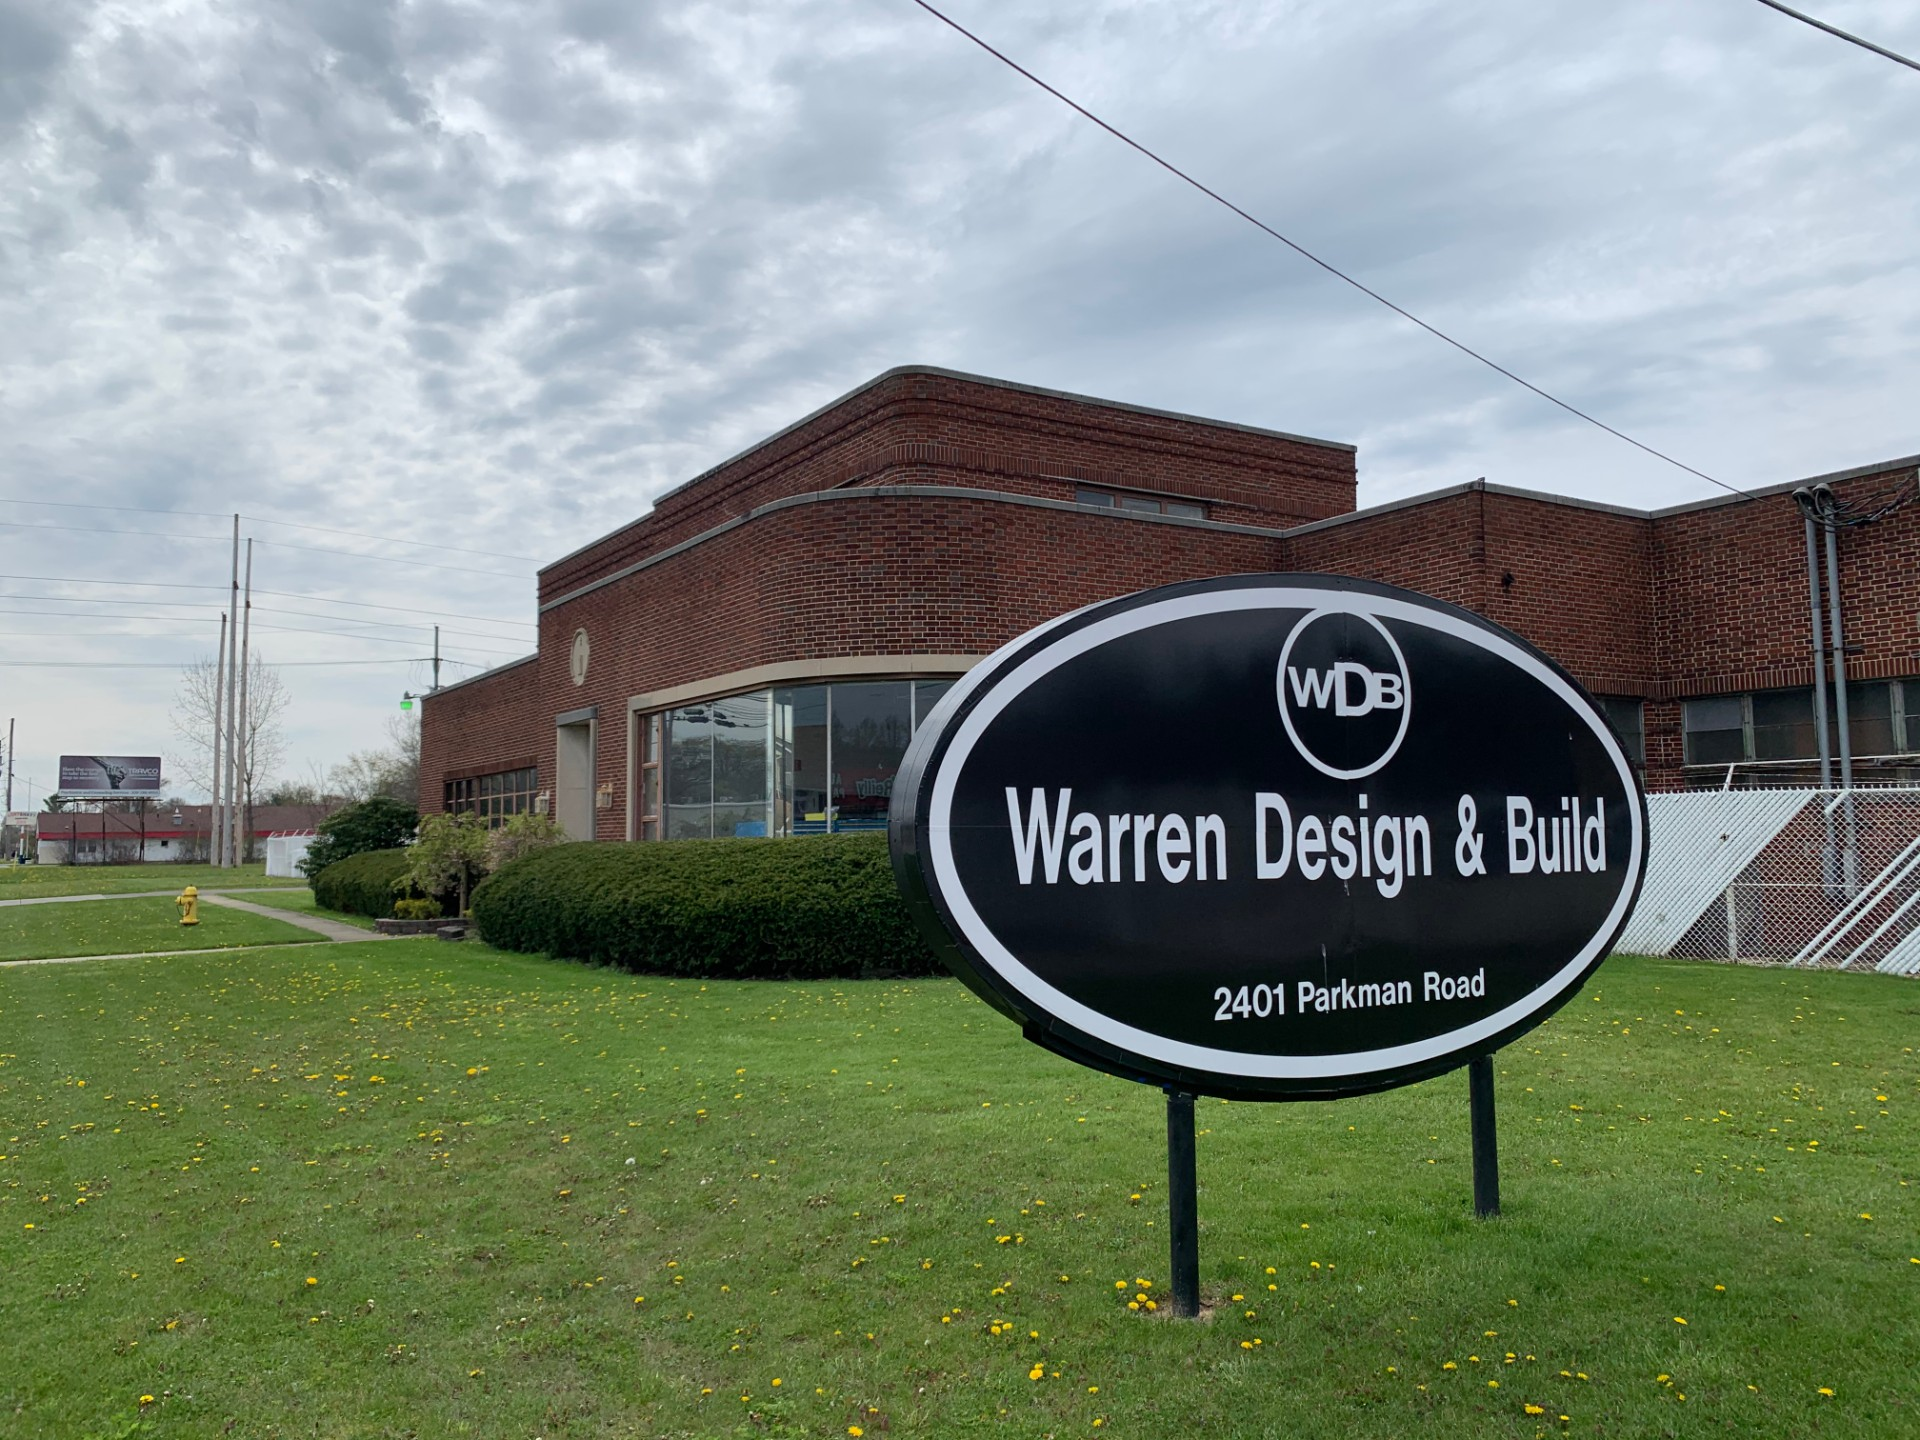 WARREN DESIGN & BUILD